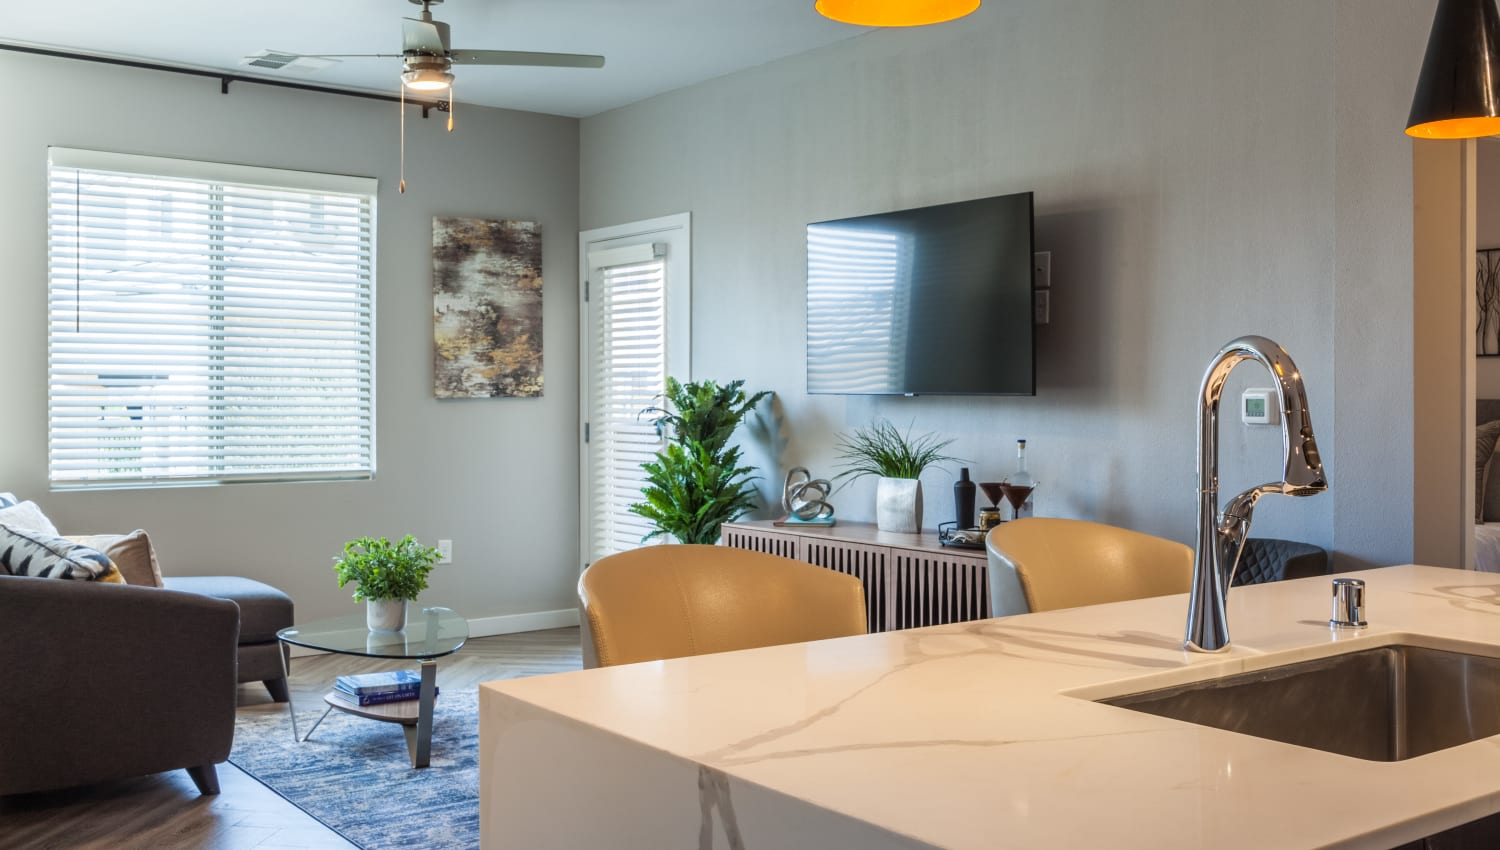 Well-furnished living room with ceiling fan at Olympus Alameda in Albuquerque, New Mexico